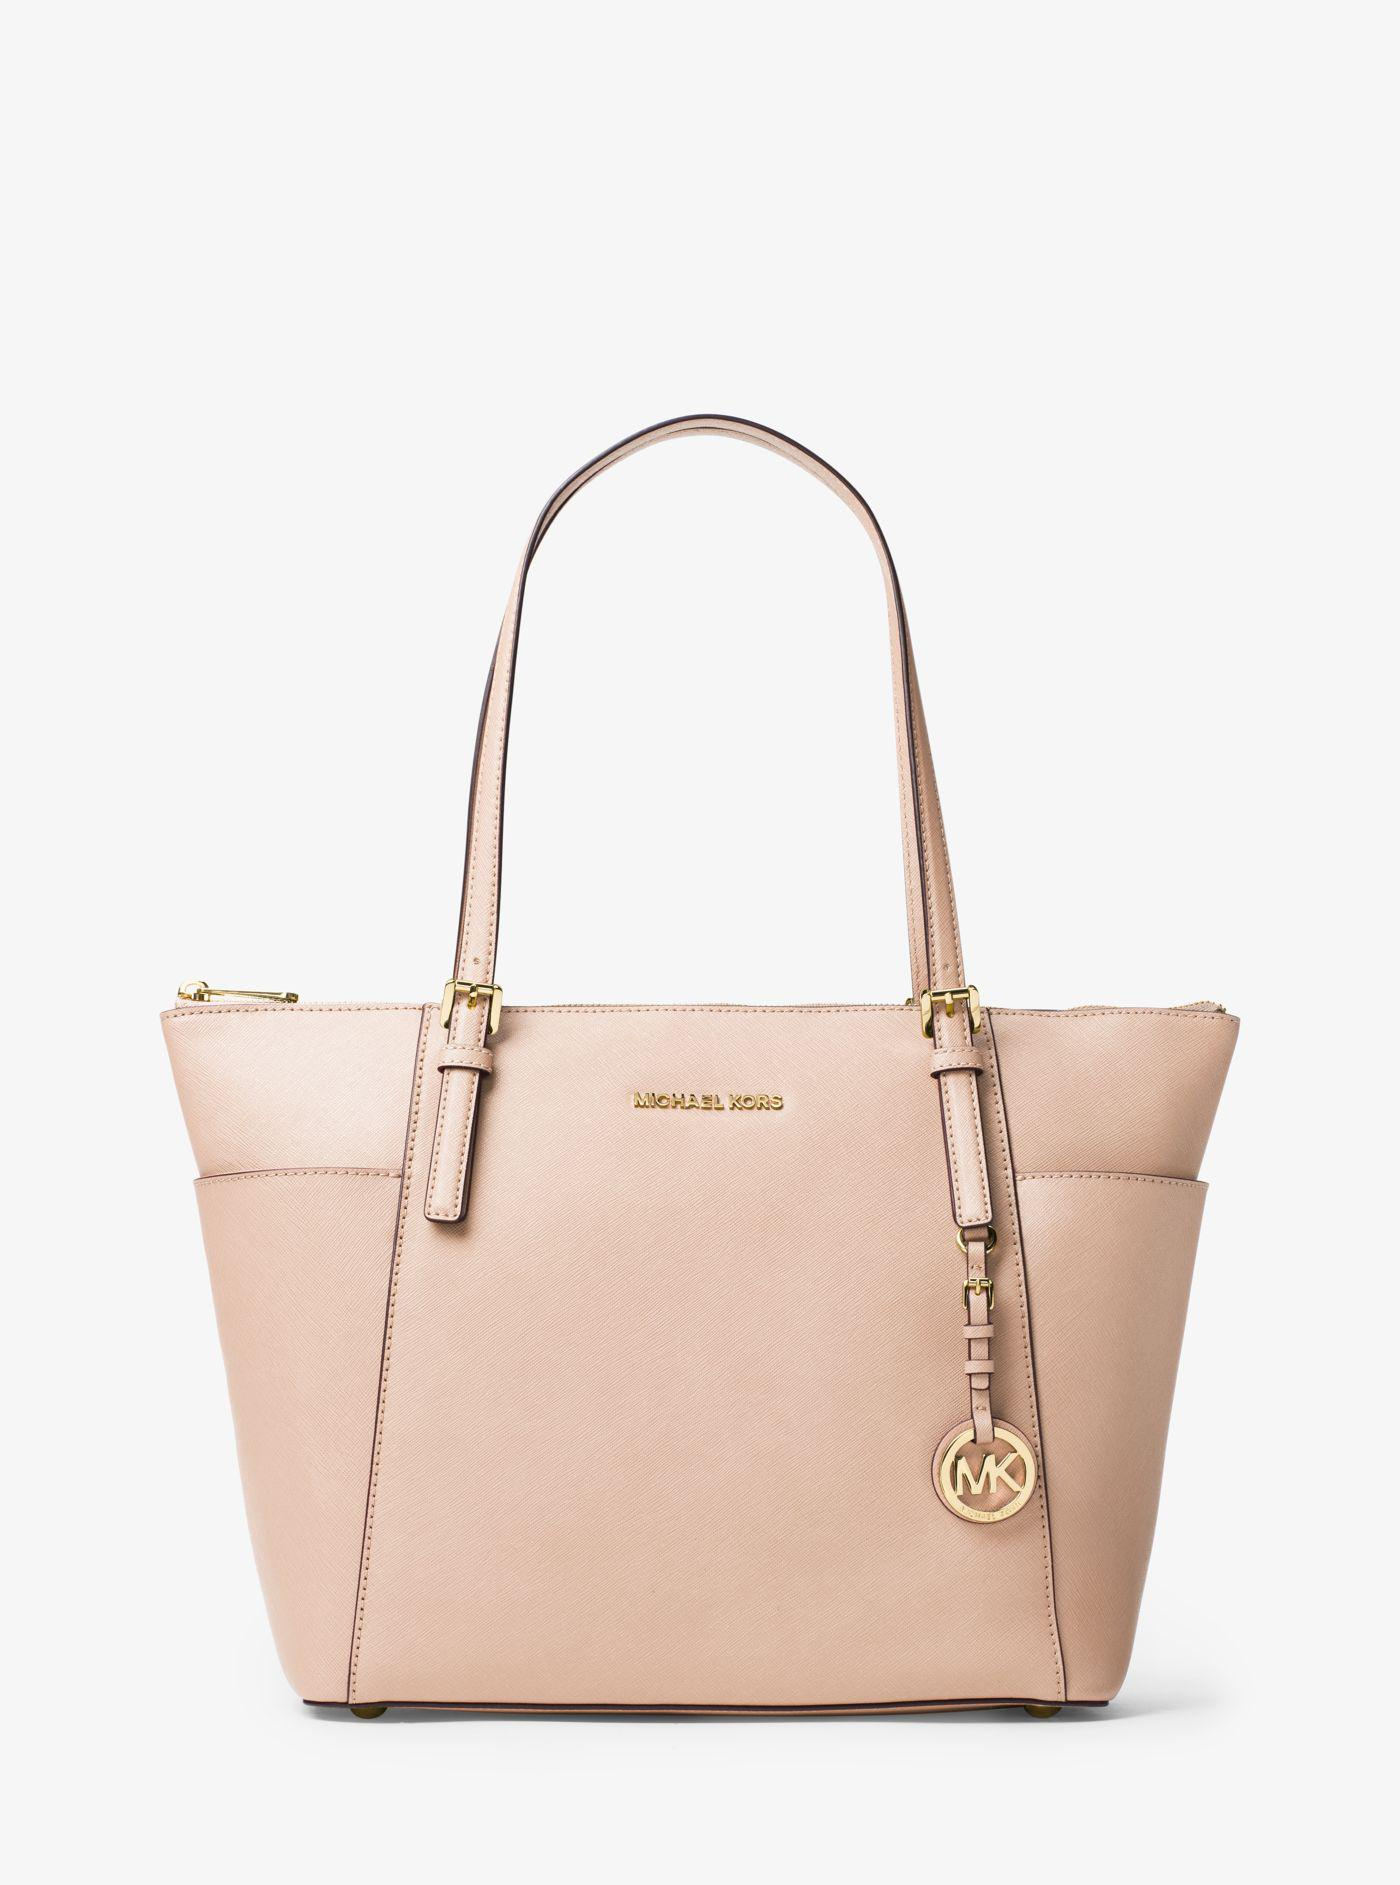 Michael Kors - Pink Jet Set Large Top-zip Saffiano Leather Tote - Lyst.  View fullscreen dfd9bb8f88434